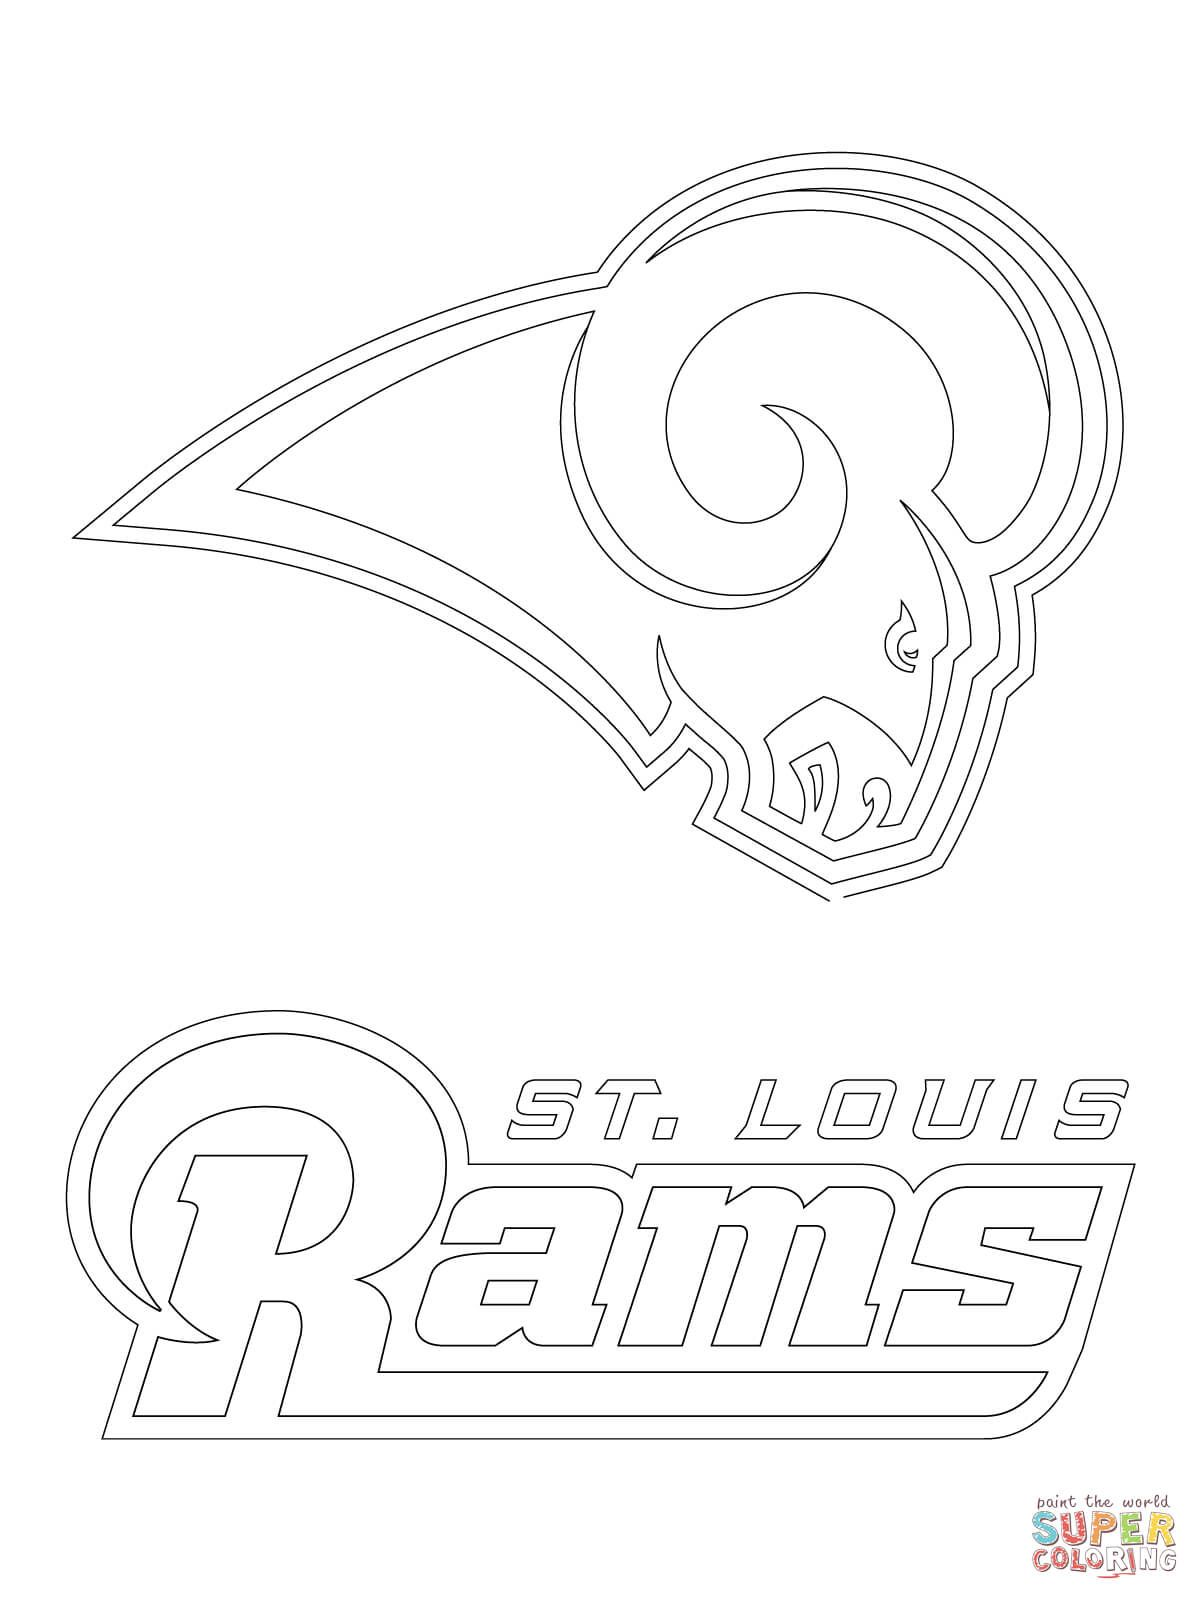 St Louis Rams Logo Coloring Page Free Printable Coloring Pages